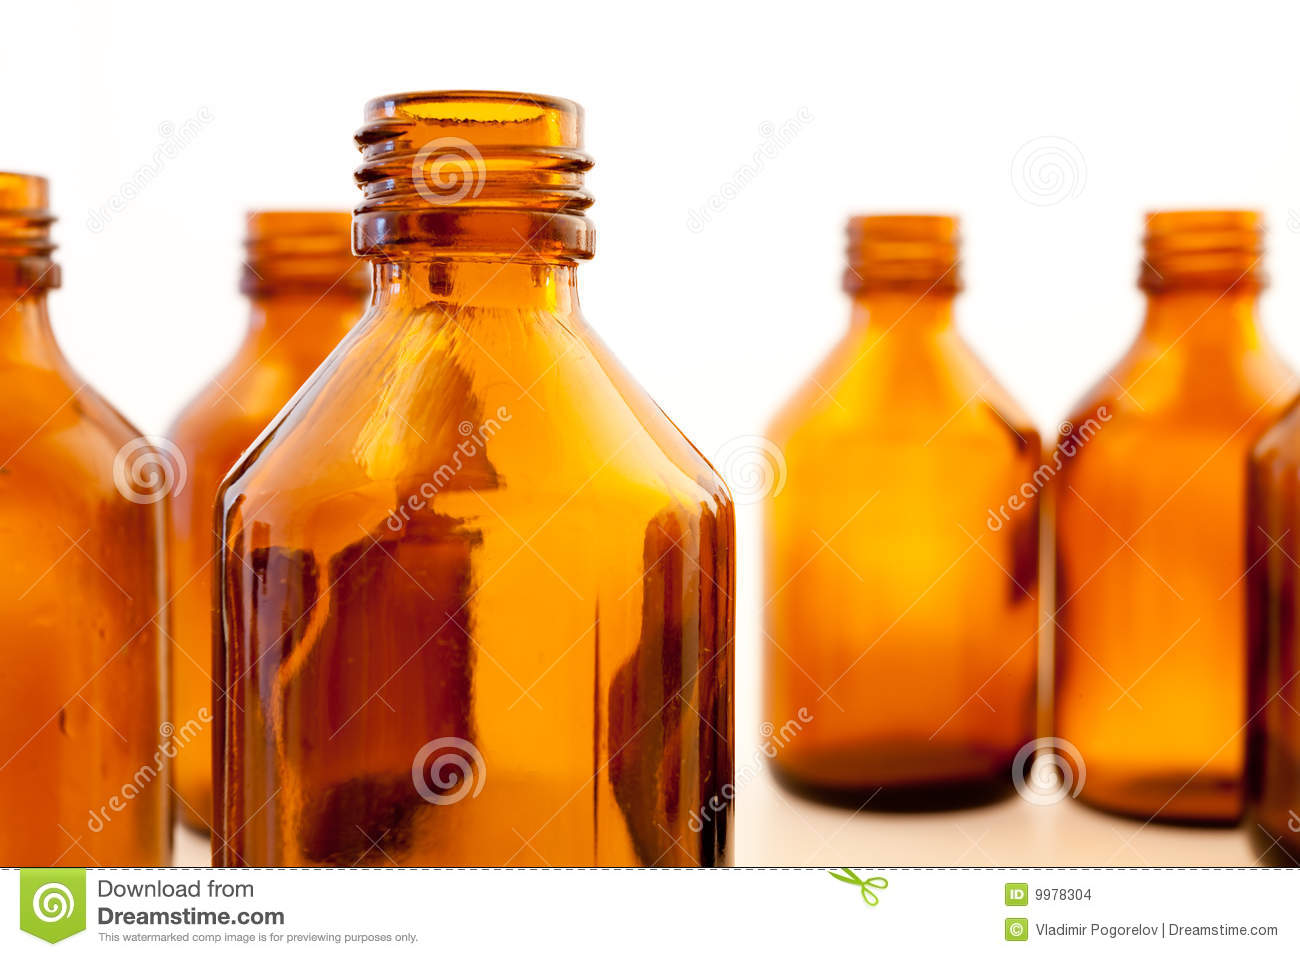 Several empty pharmaceutical bottles without labels.